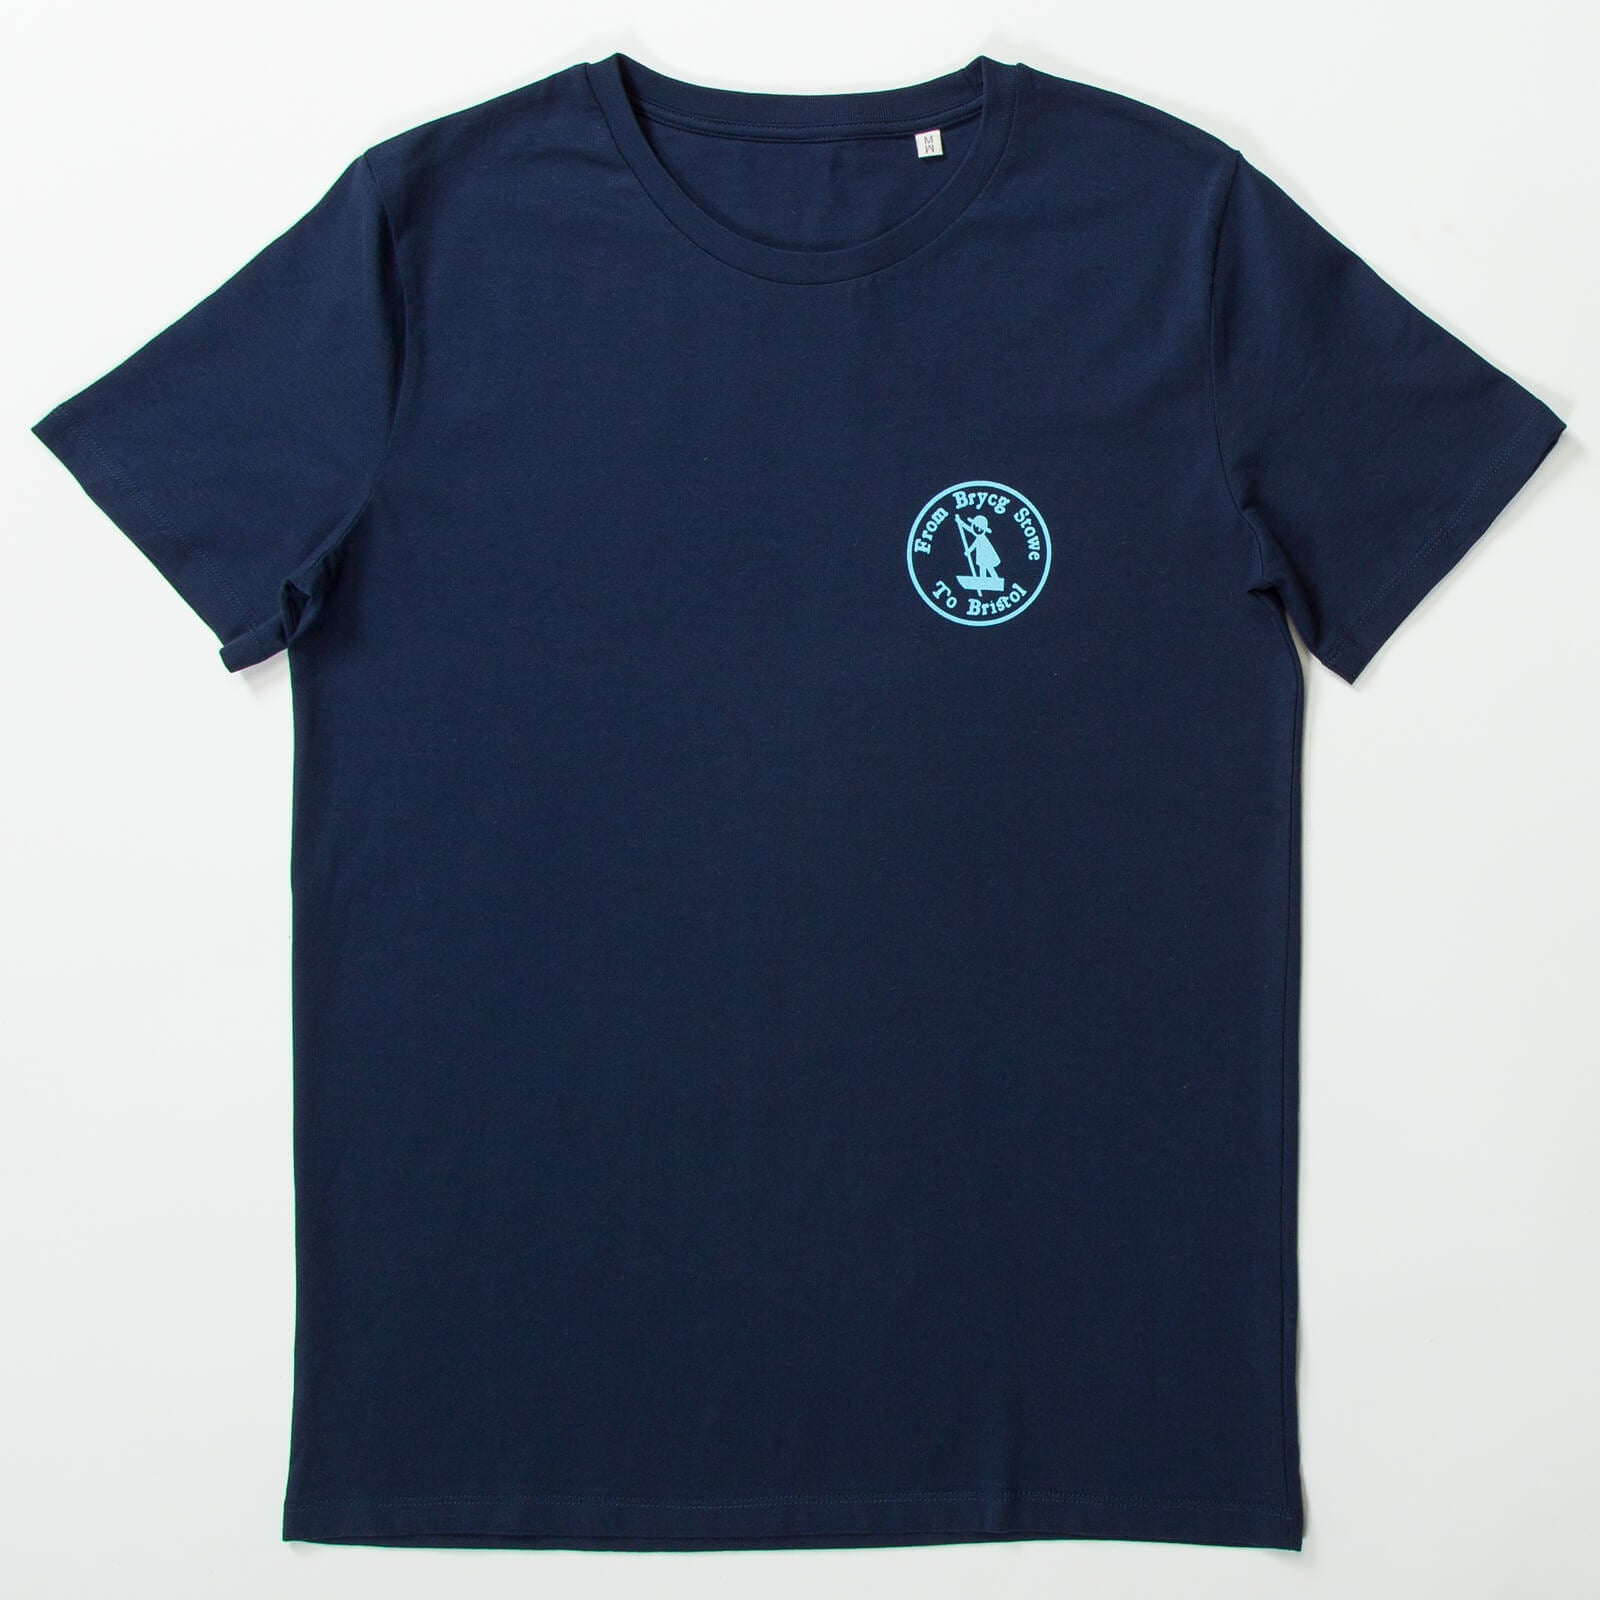 gaolferry navy blue t-shirt with screen printed image brycg stowe to Bristol